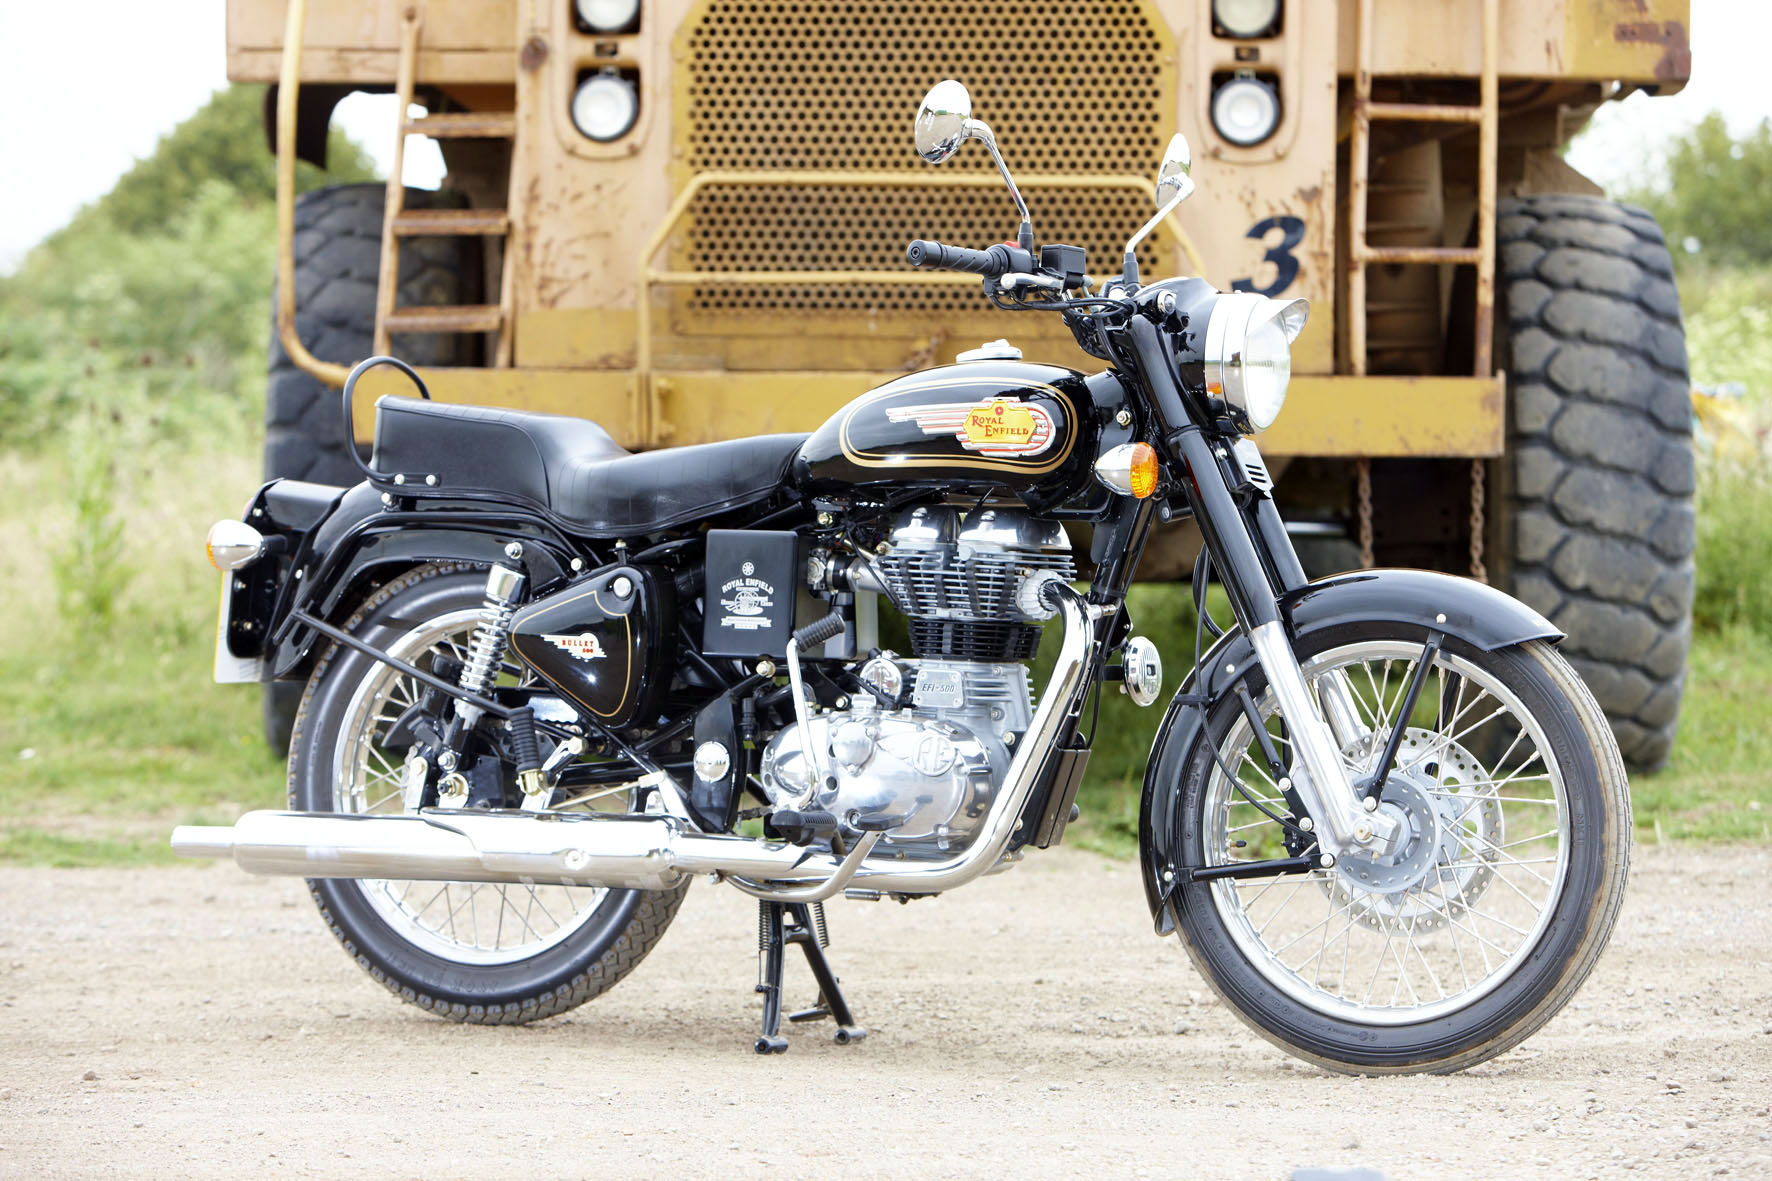 Royal Enfield Bullet C5 Classic EFI 2010 images #127532